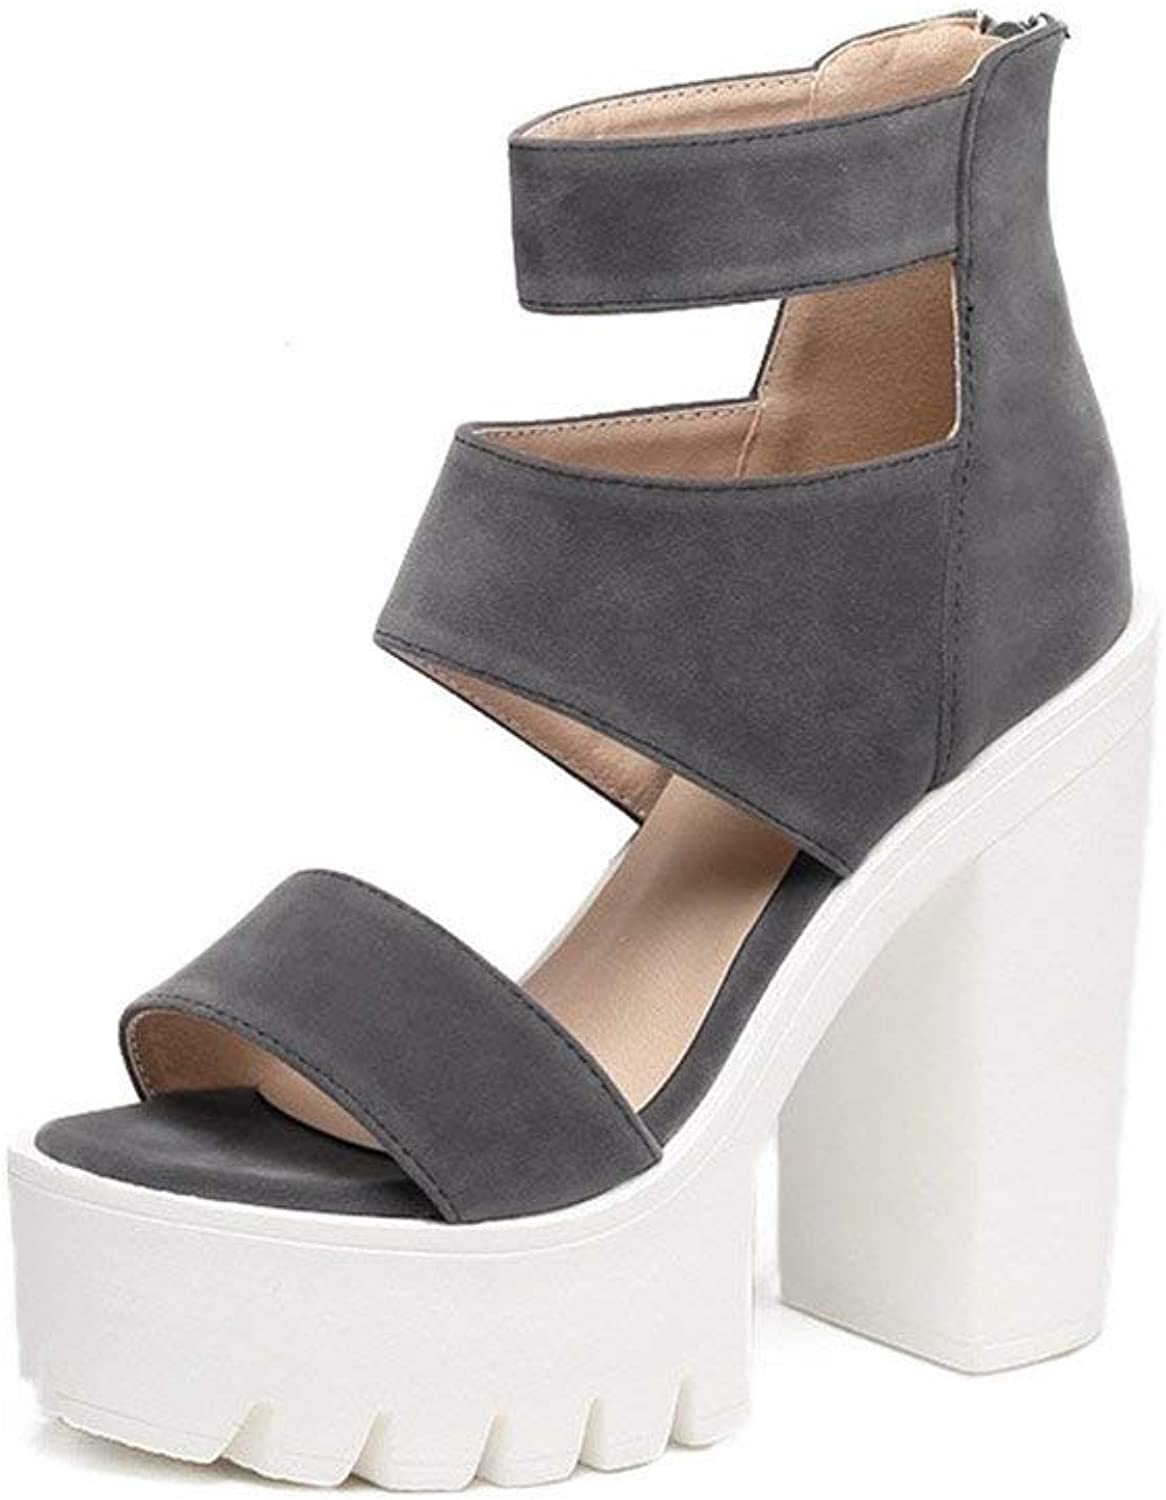 High Heels Women Sandals Casual Cut-Outs Open Toe Thick Heels Female shoes High Heels